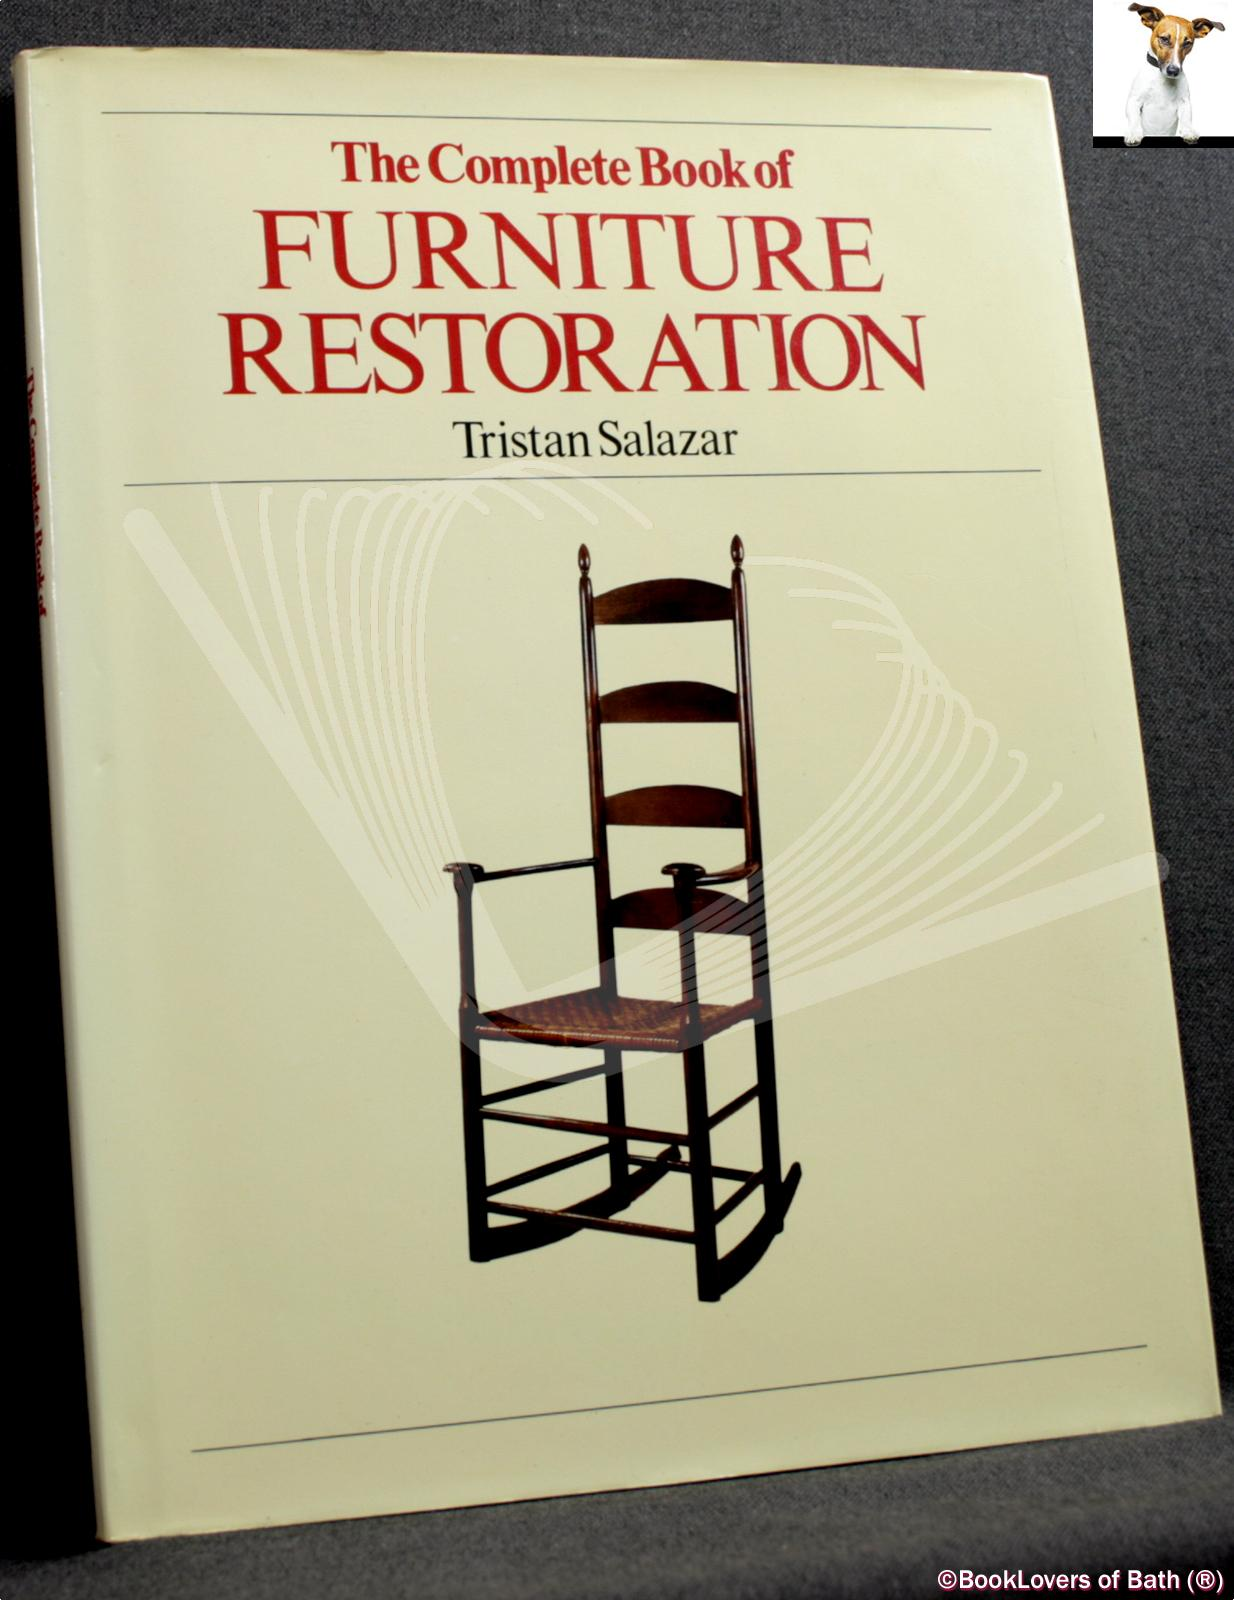 Complete Book of Furniture Restoration - Tristan Salazar